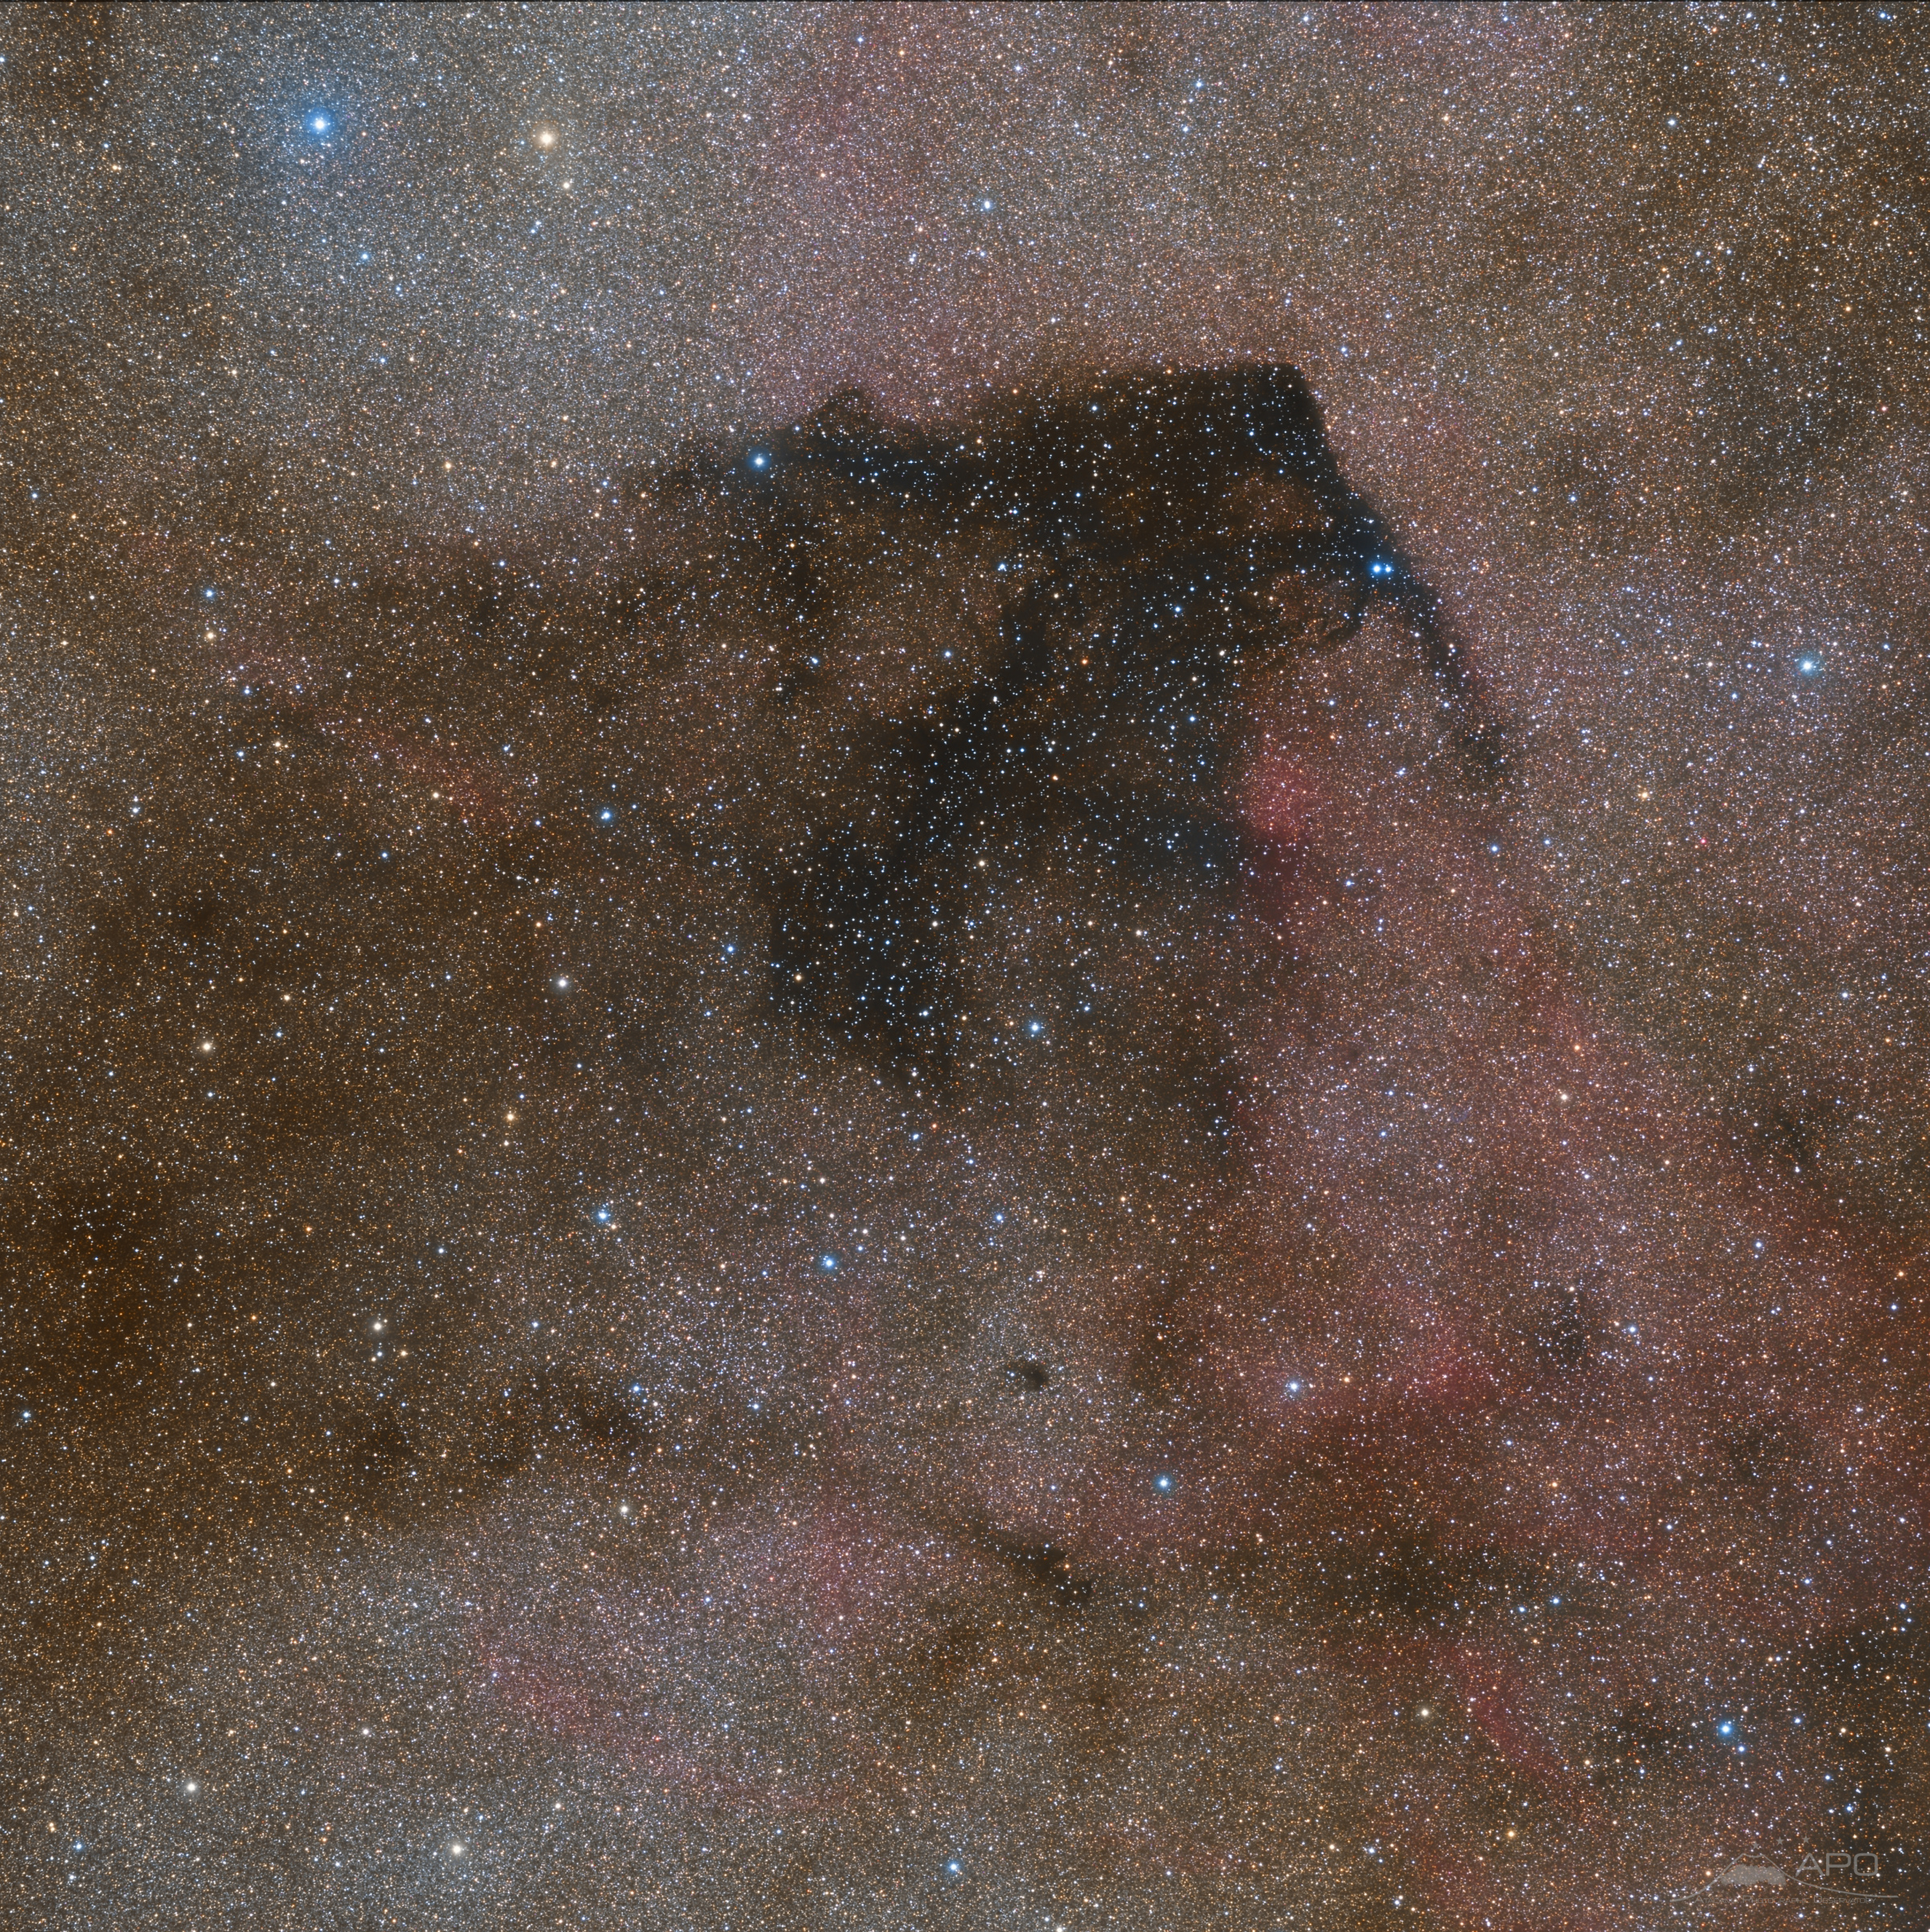 Barnard312 en version LRGB